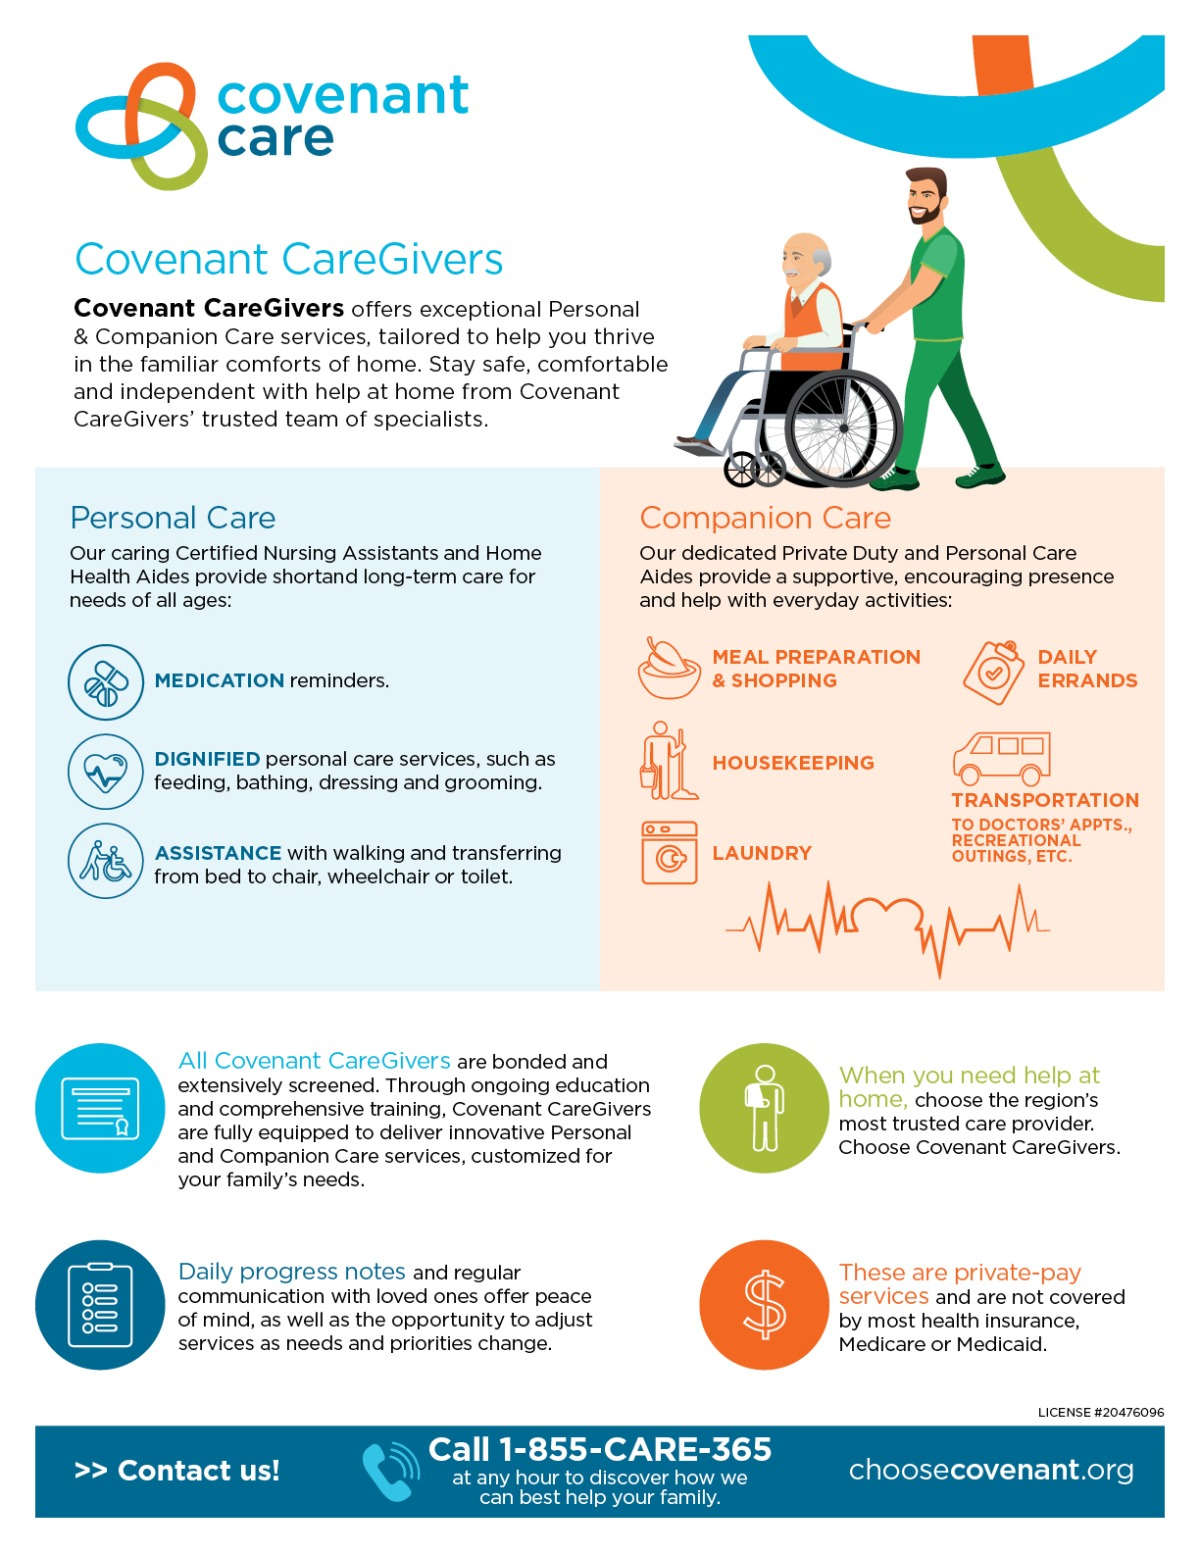 Covenant Care Caregivers one sheet infographic of services